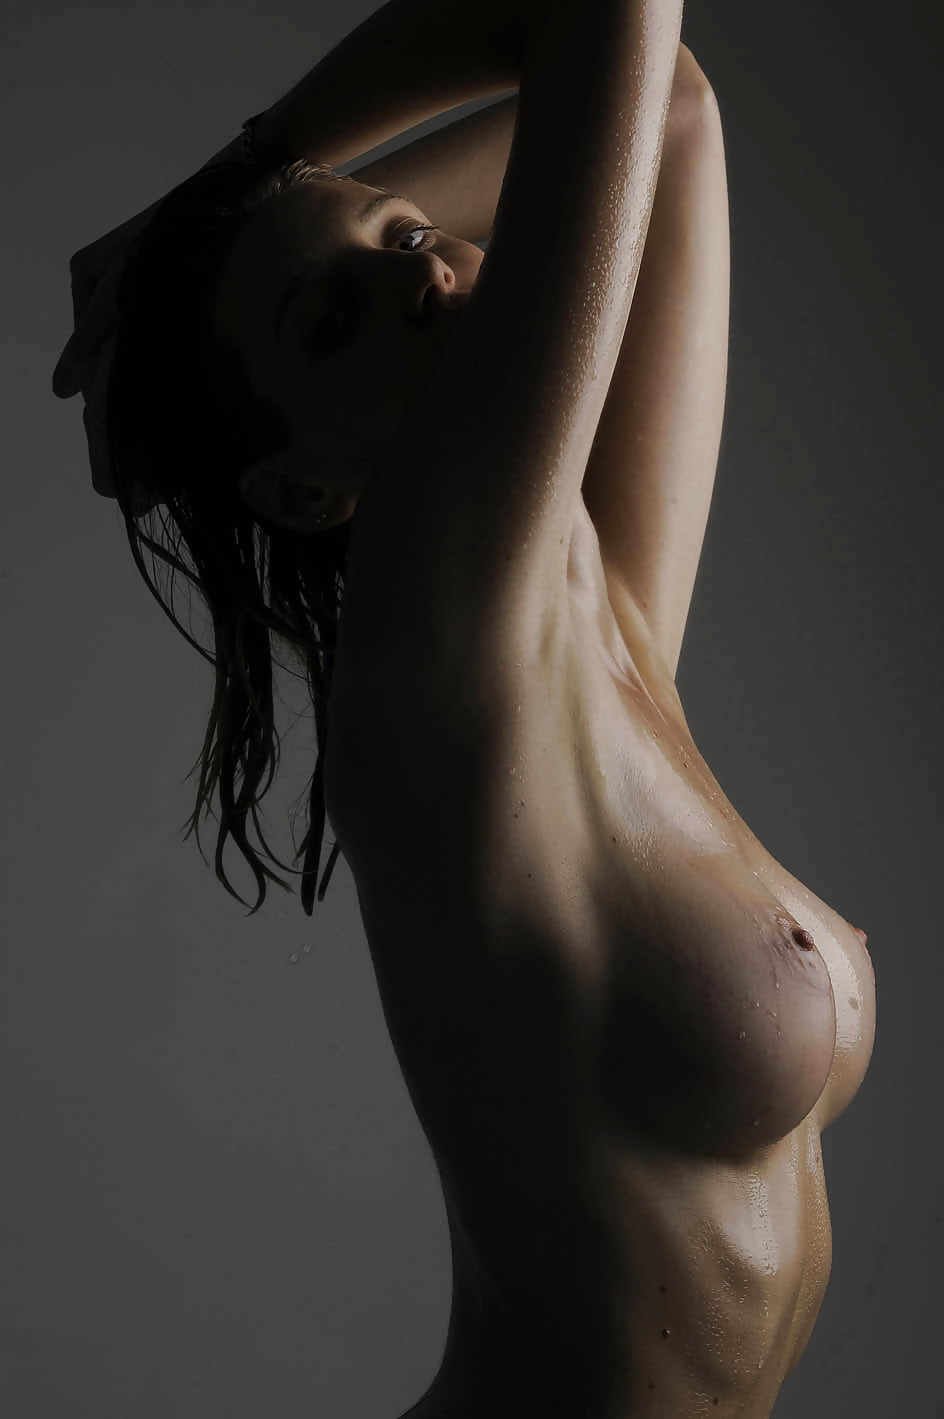 Pain hip naked side view stock photos, pictures royalty